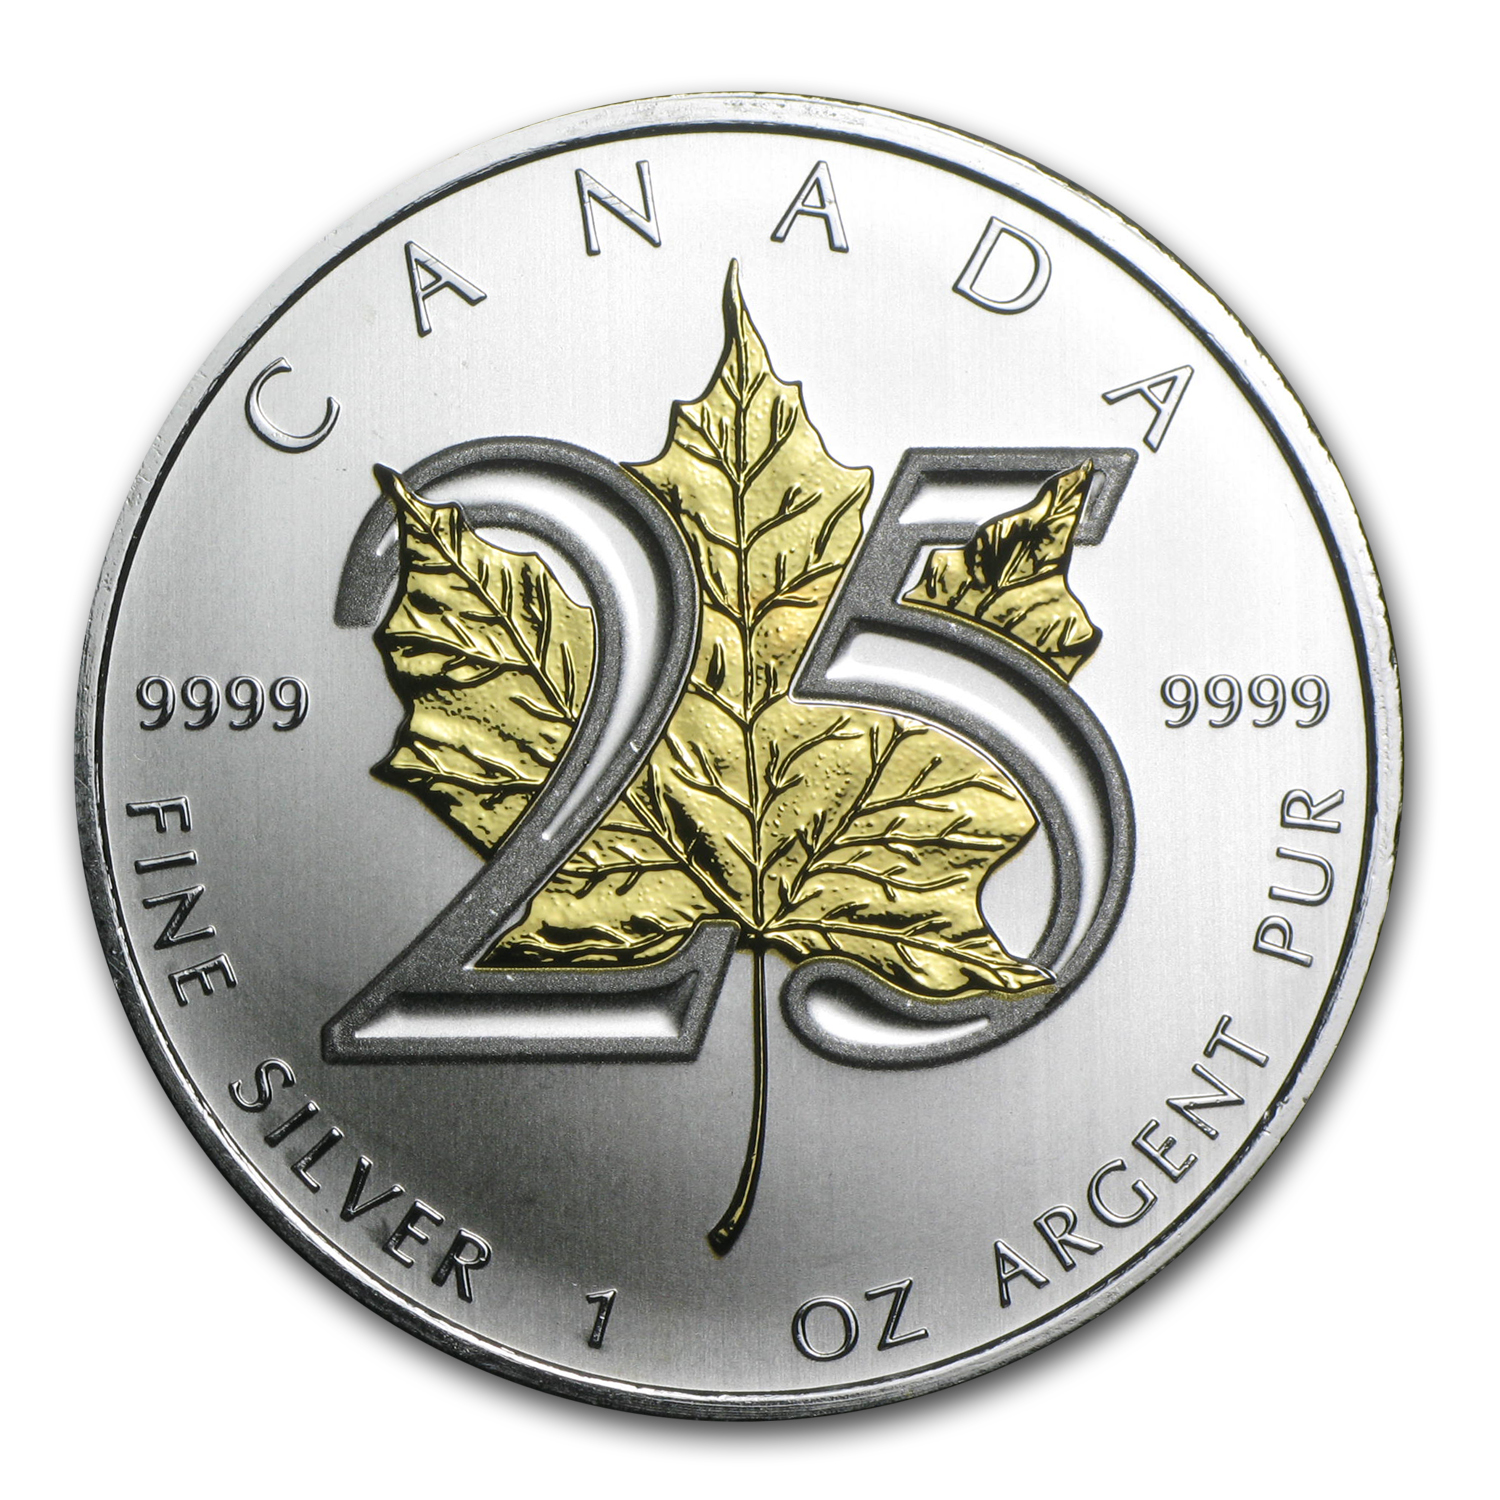 2013 1 oz Silver Canadian Maple Leaf (25th Anniv, Gilded Leaf)